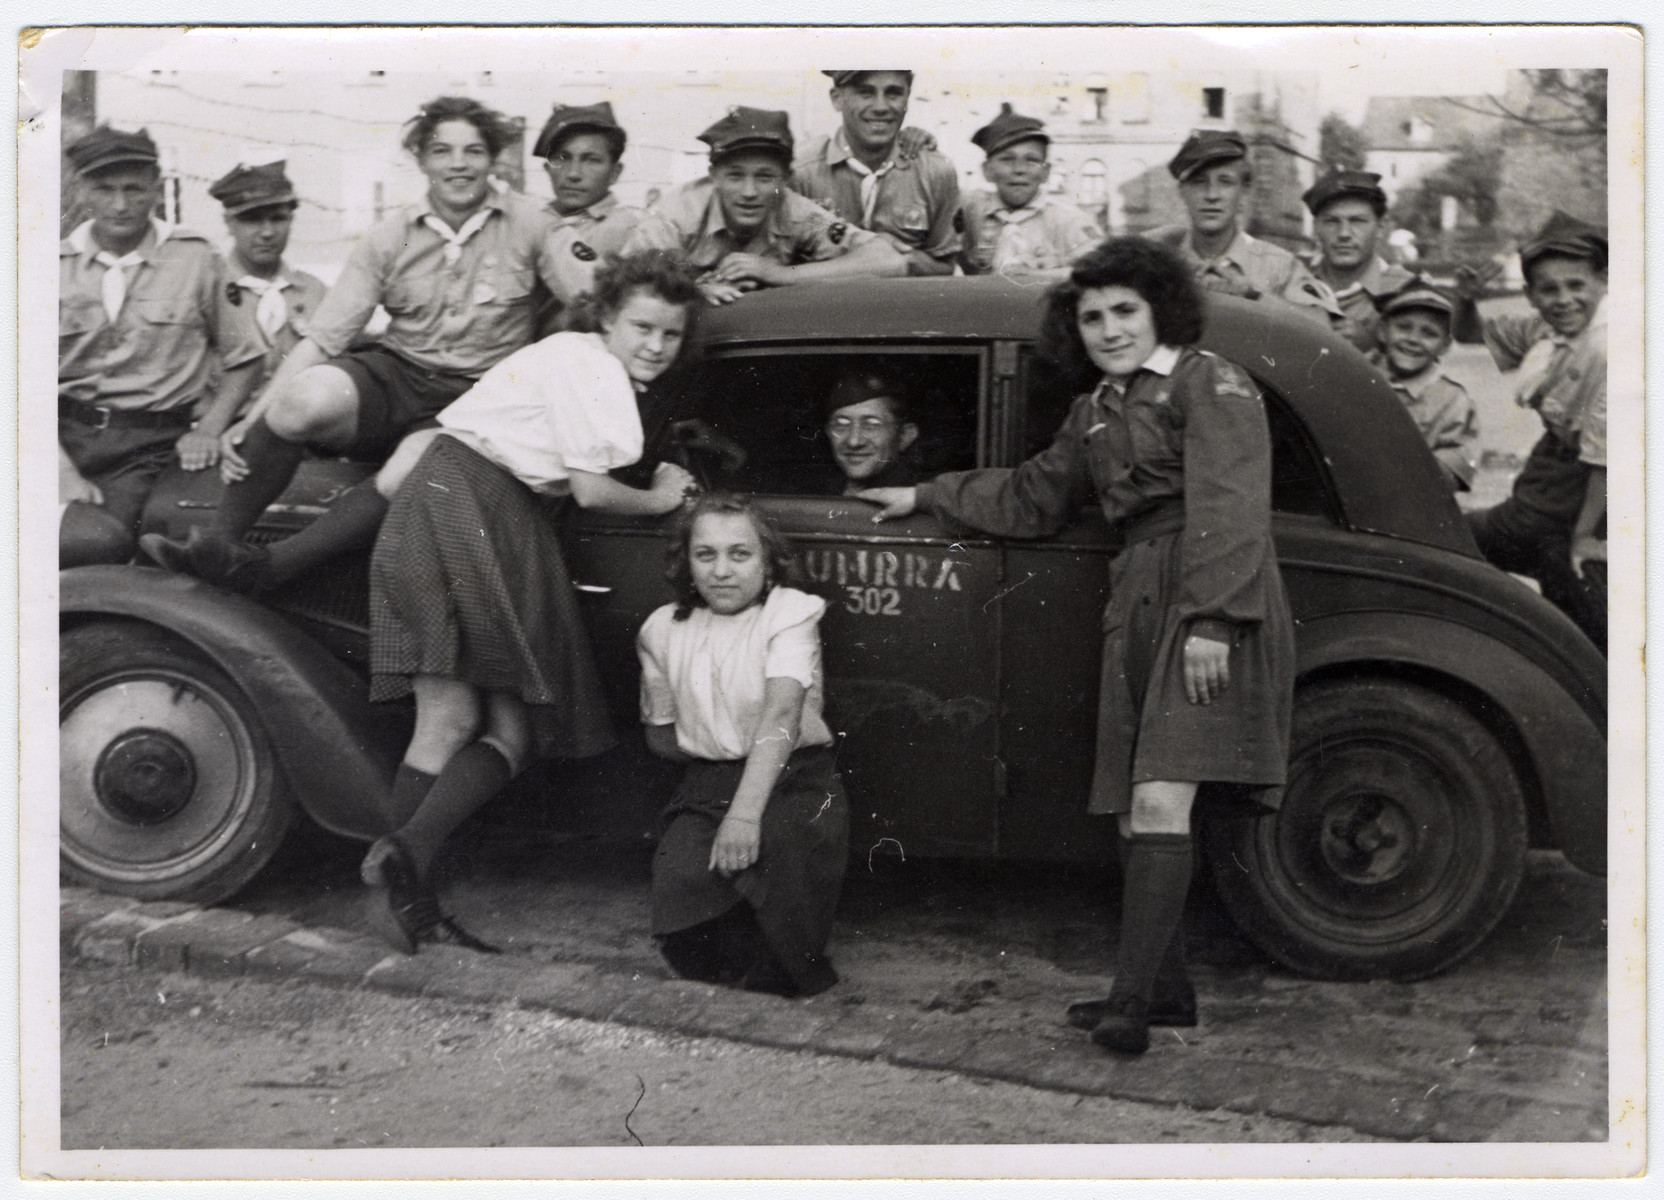 UNRRA director Mordecai Schwartz (pictured in the automobile) assists in the repatriation of Polish displaced persons.